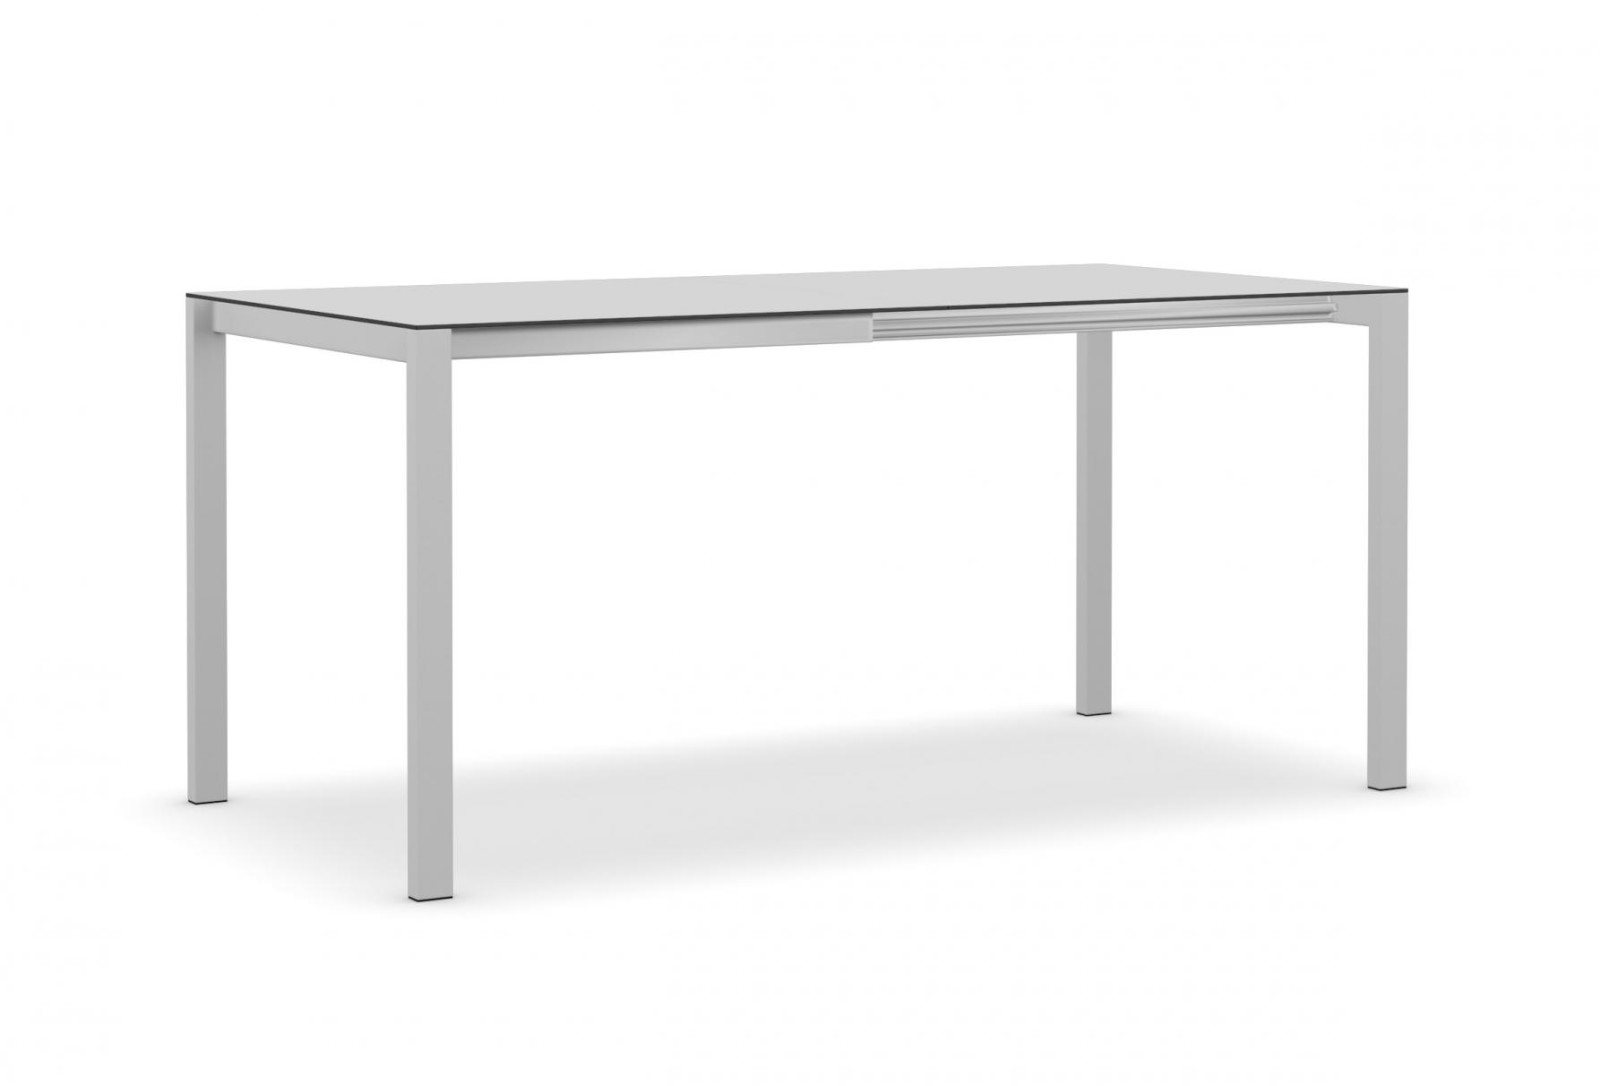 Easy Extendable with folding extension White with black edge, Aluminium lacquered steel, White with